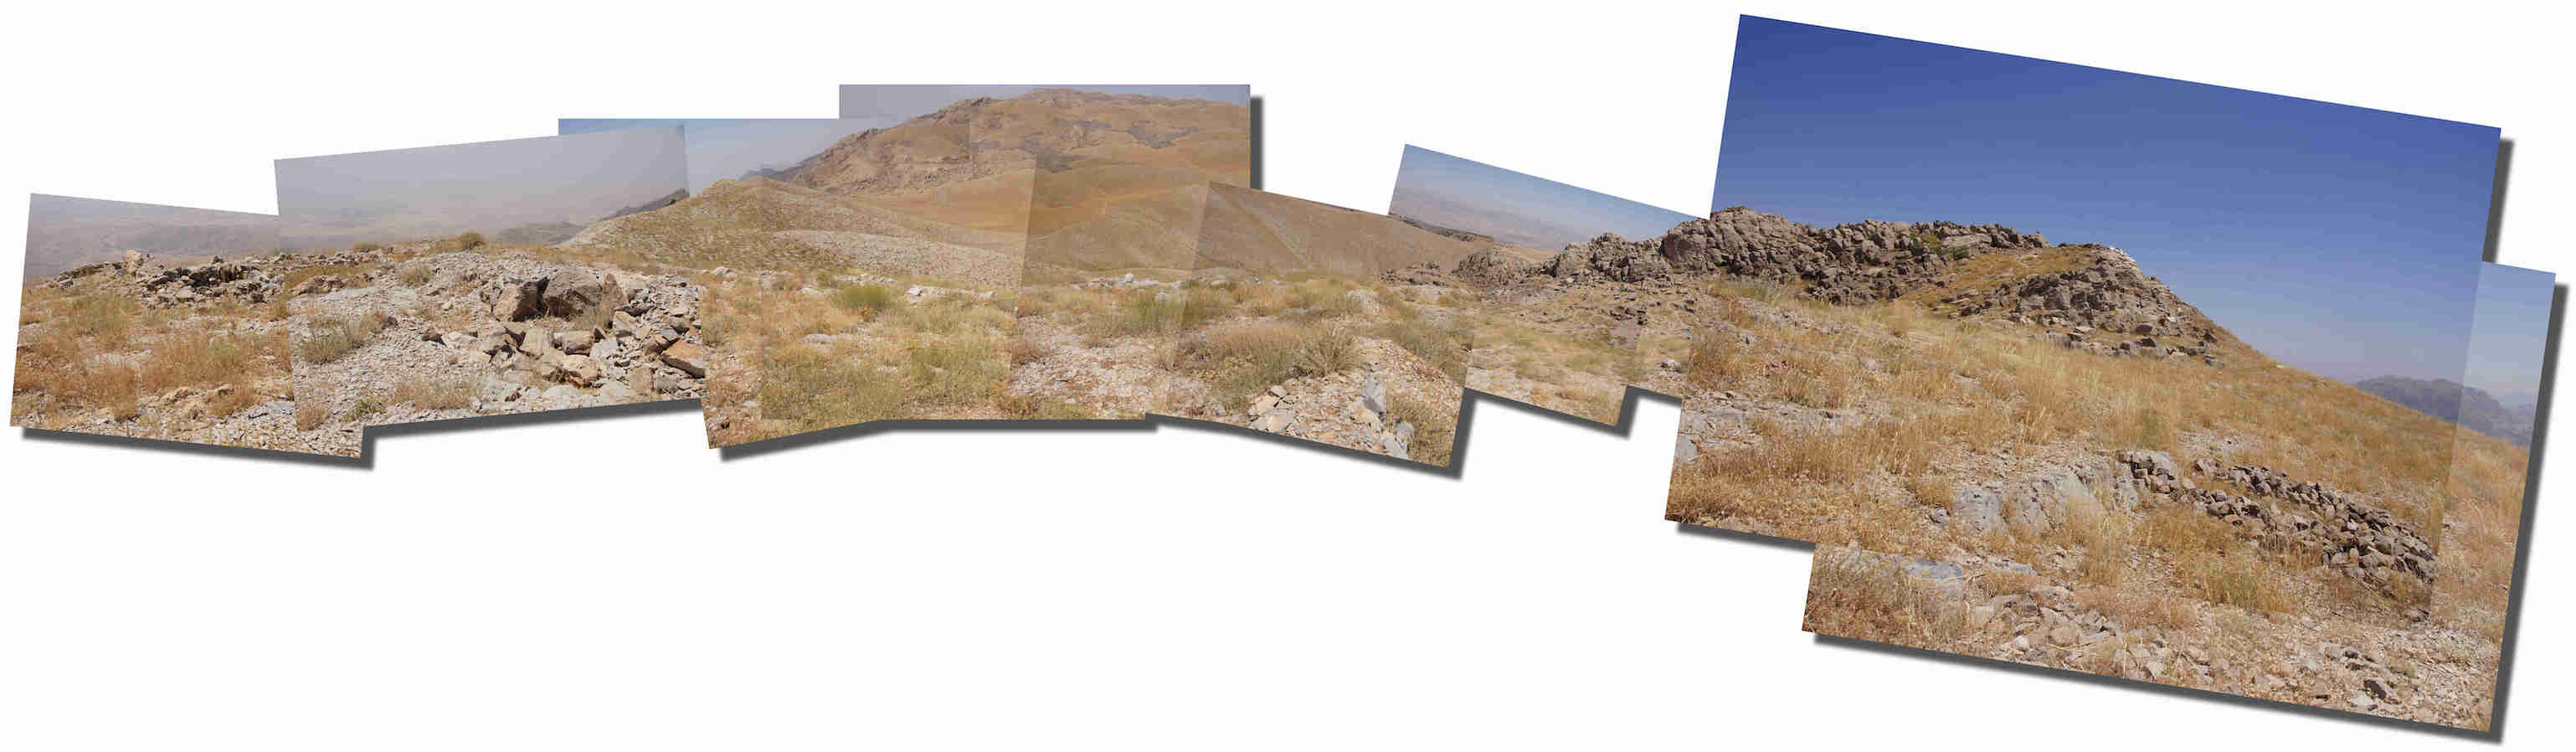 Noah's Ark on Mt. Cudi Summit Panorama